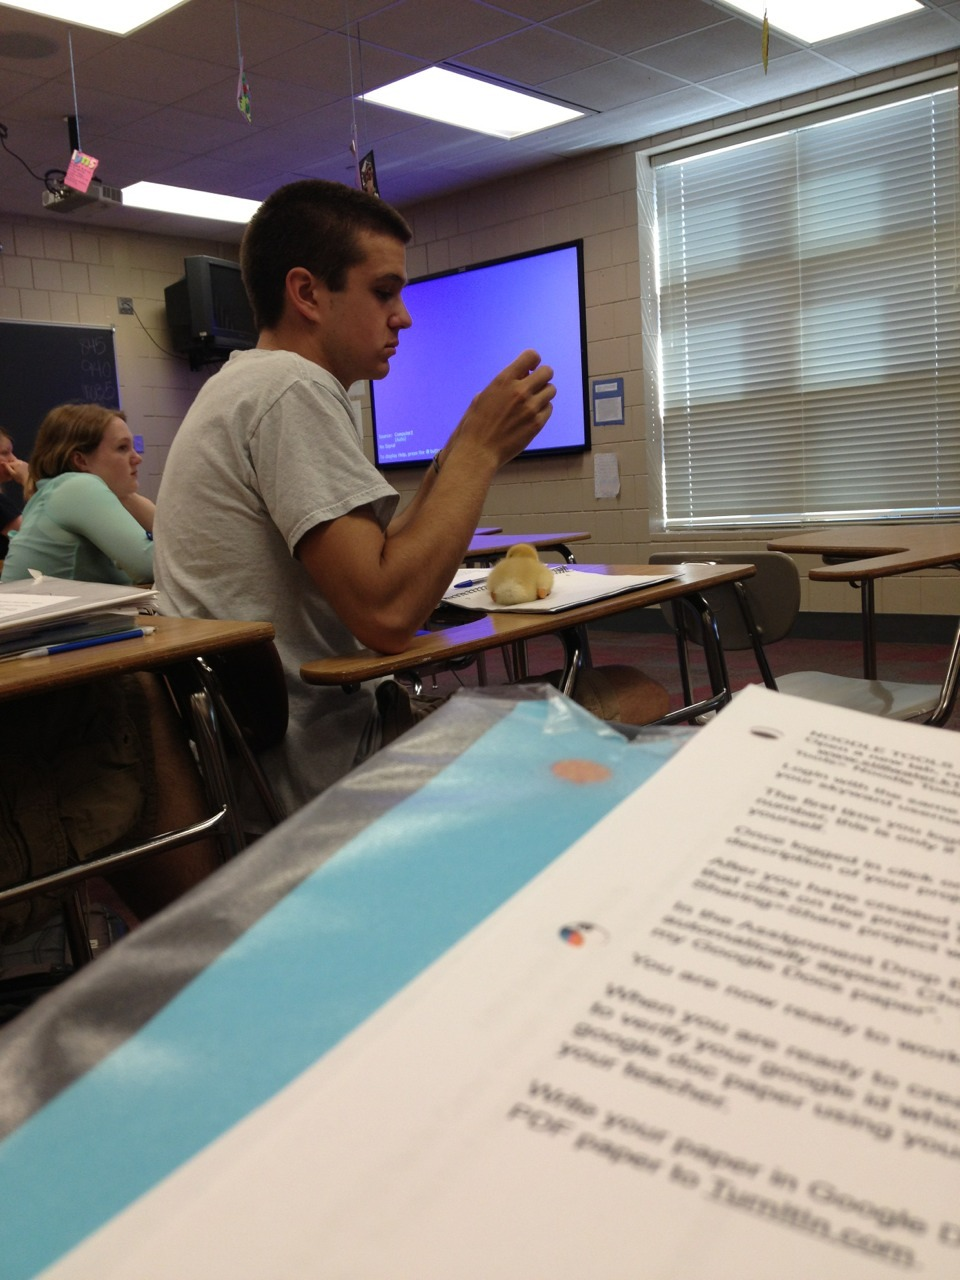 santanist:  teenytigress:  SO THIS GUY IN MY ENGLISH IS DOING A PROJECT FOR BIO WHERE HE GETS A DUCKLING TO IMPRINT ON HIM SO HE JUST CARRIES IT AROUND WITH HIM TO ALL OF HIS CLASSES AND I SWEAR THIS DUCK IS THE MOST WELL BEHAVED FUCKING POULTRY IVE EVER SEEN IT JUST SITS ON HIS DESK QUIETLY AND SOMETIMES HE PUTS IT IN HIS POCKET AND IT JUST SLEEPS LIKE WOW YOU GO DUCKY  most well behaved poultry